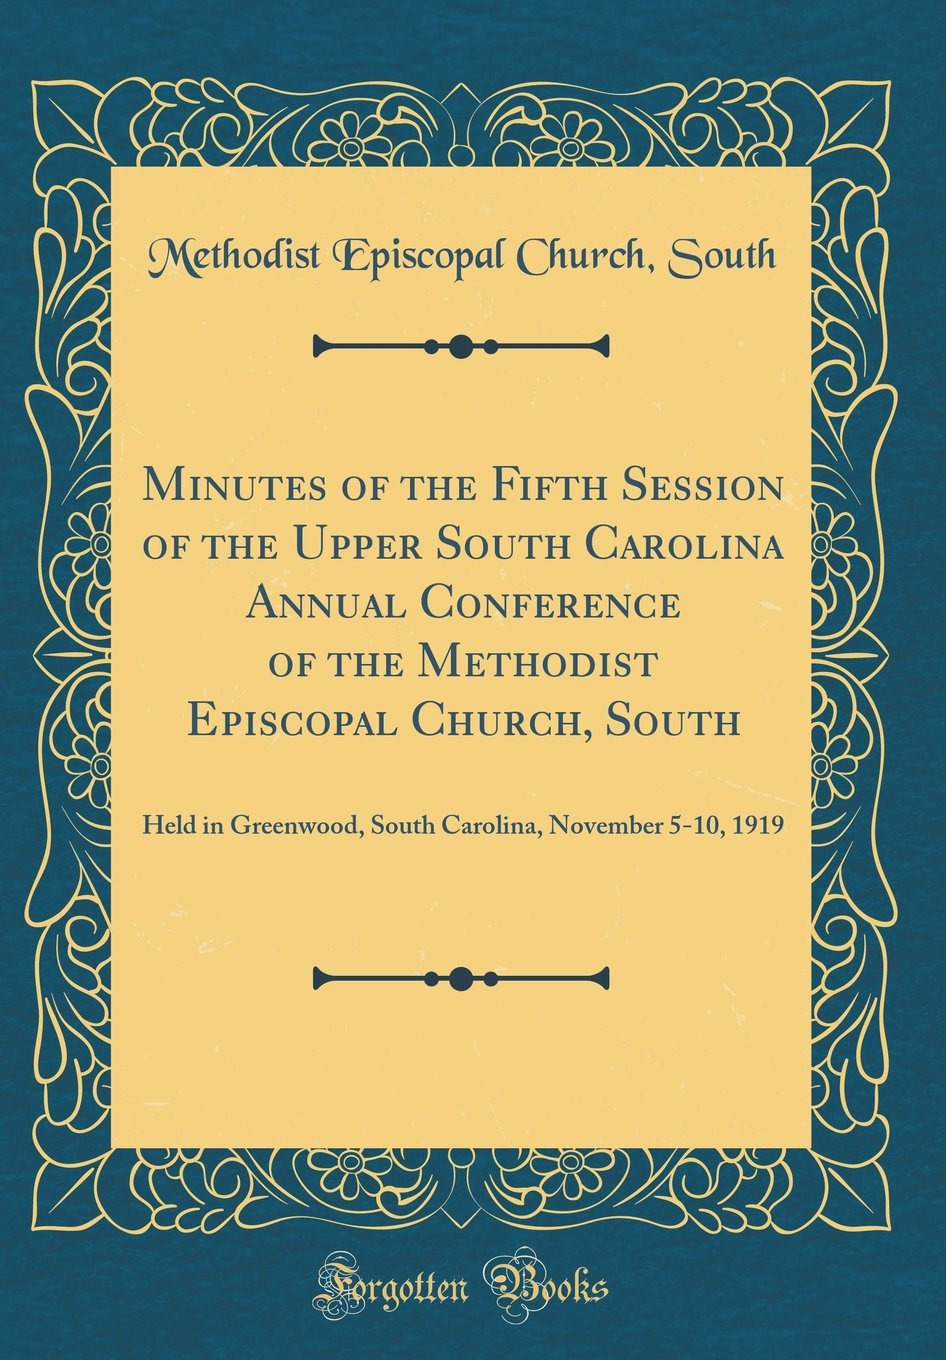 Minutes of the Fifth Session of the Upper South Carolina Annual Conference of the Methodist Episcopal Church, South: Held in Greenwood, South Carolina, November 5-10, 1919 (Classic Reprint) ebook